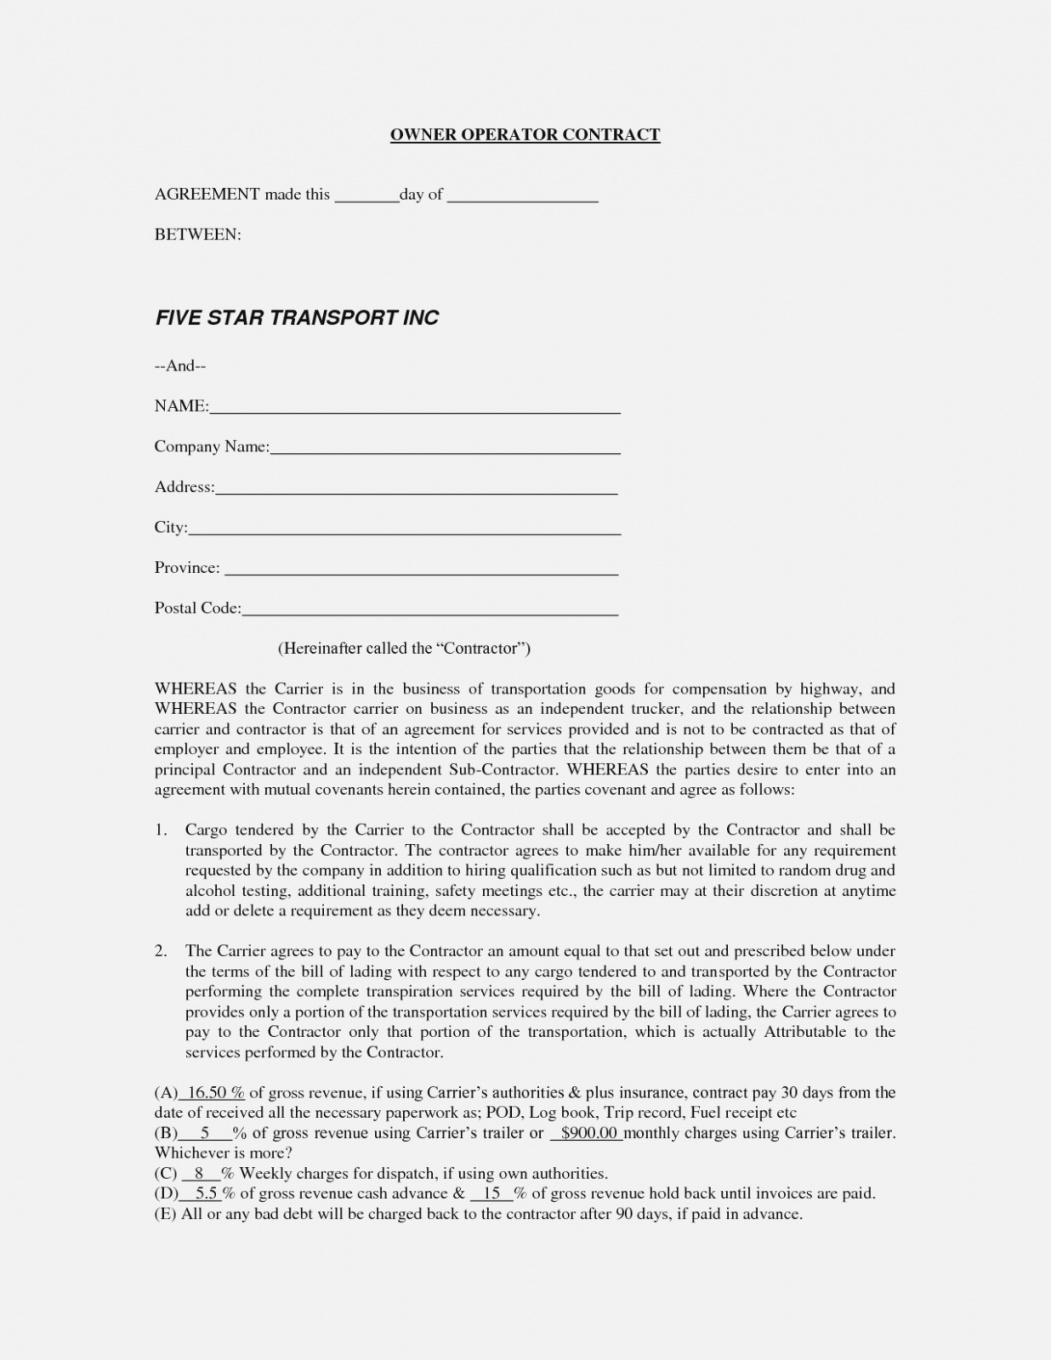 Why You Should Not Go To Owner Operator Lease Agreement